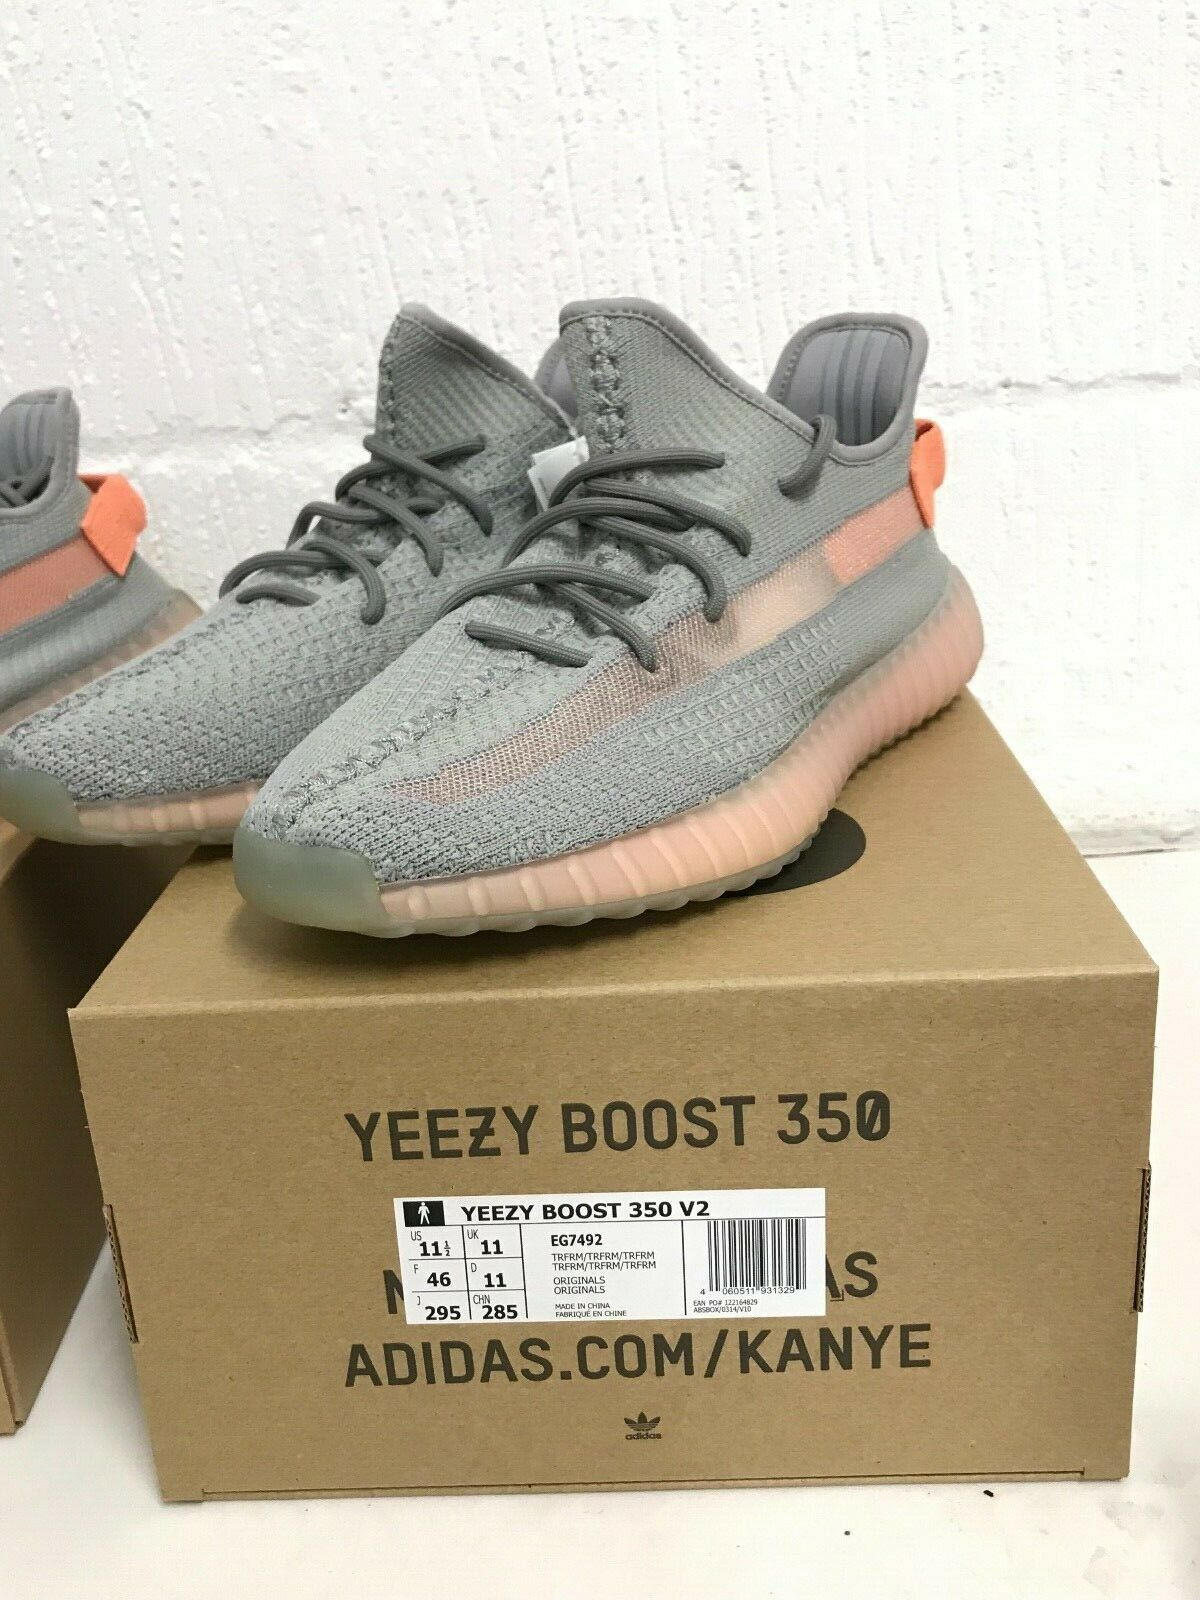 Adidas Yeezy Boost 350 V2  Grey TRFM EG7492 Sizes 3 4.5 5 5.5 6 static 3m 700 image 6